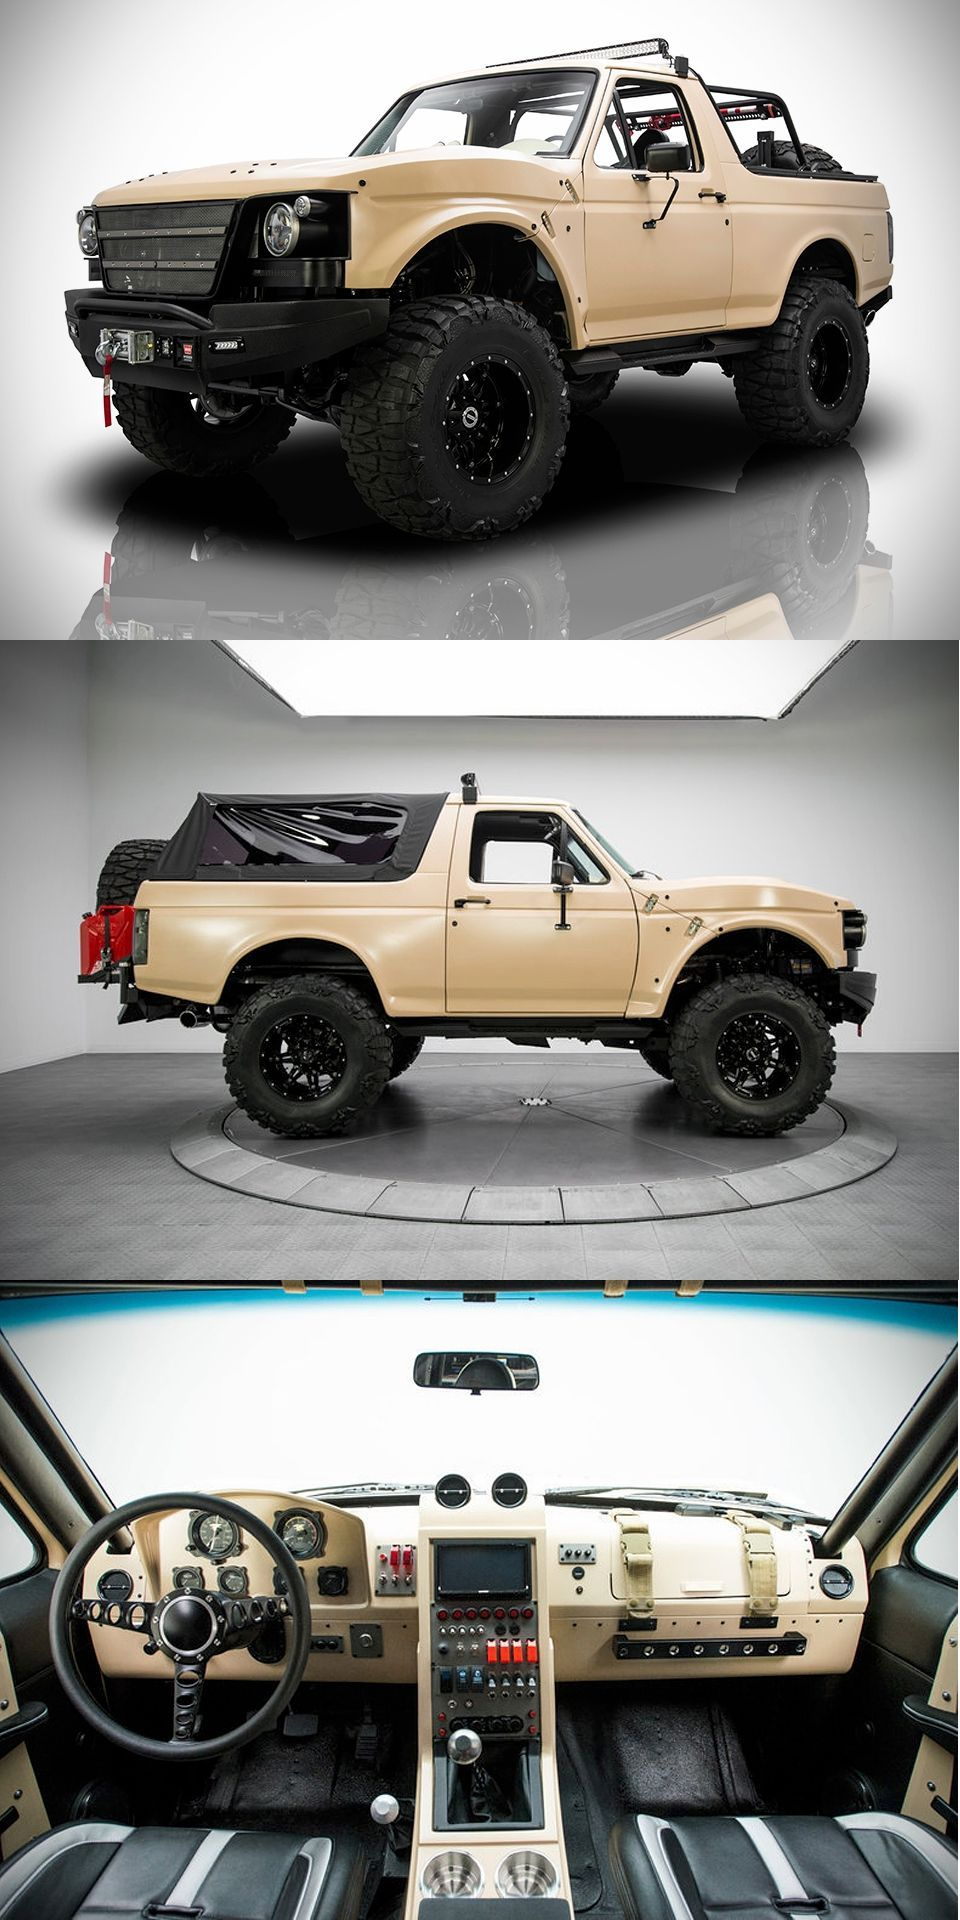 Ford Bronco 2020 Engine Price, Design And Review With the